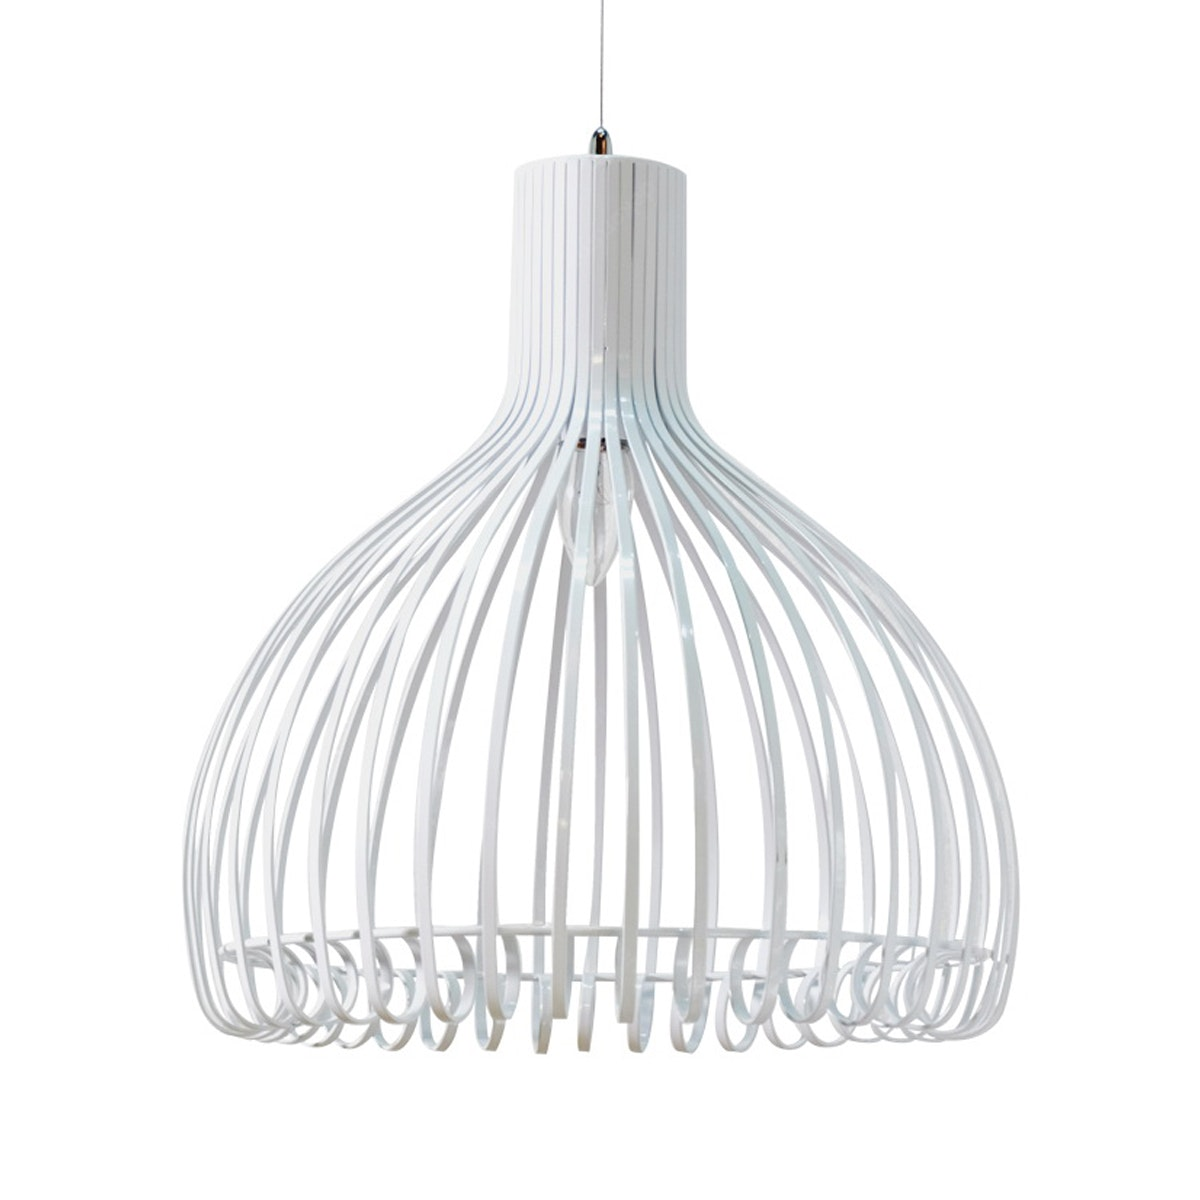 Lightology Olive Pendant Lamp / Lampu Gantung P61-1 WH